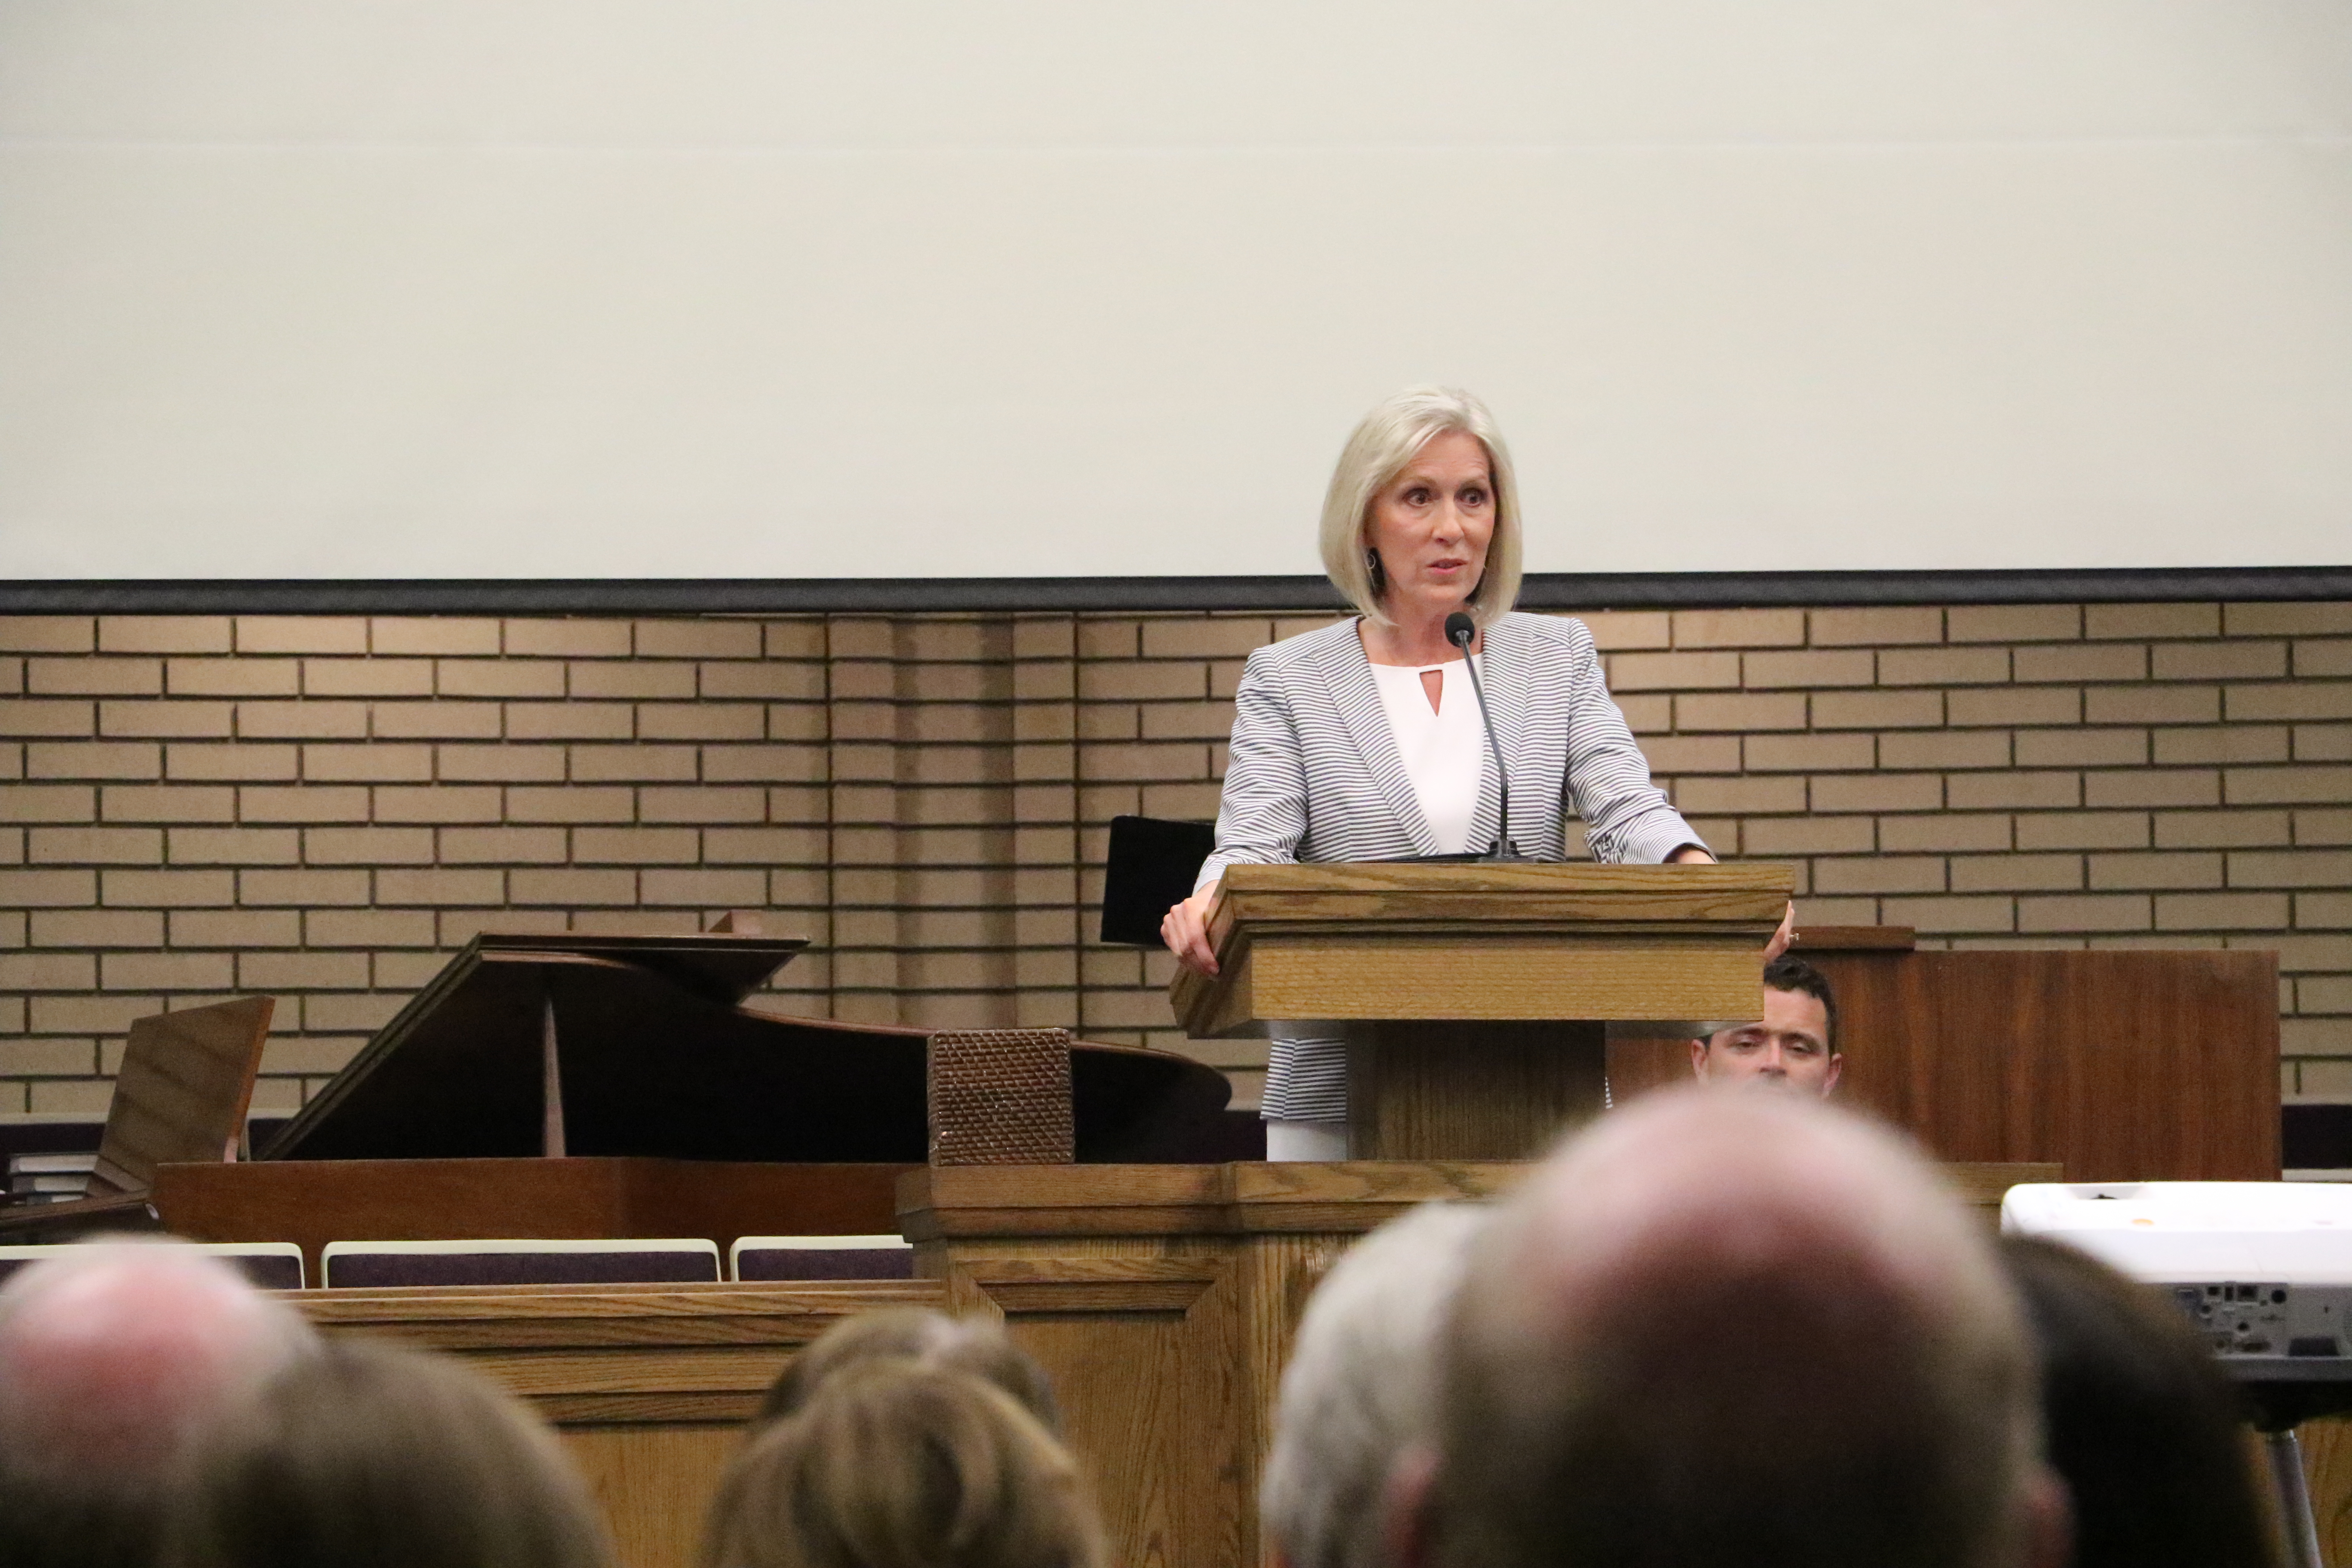 Sister Joy D. Jones speaks at a devotional on religious freedom and civic responsibility in Holladay, Utah, on Sept. 22, 2019.